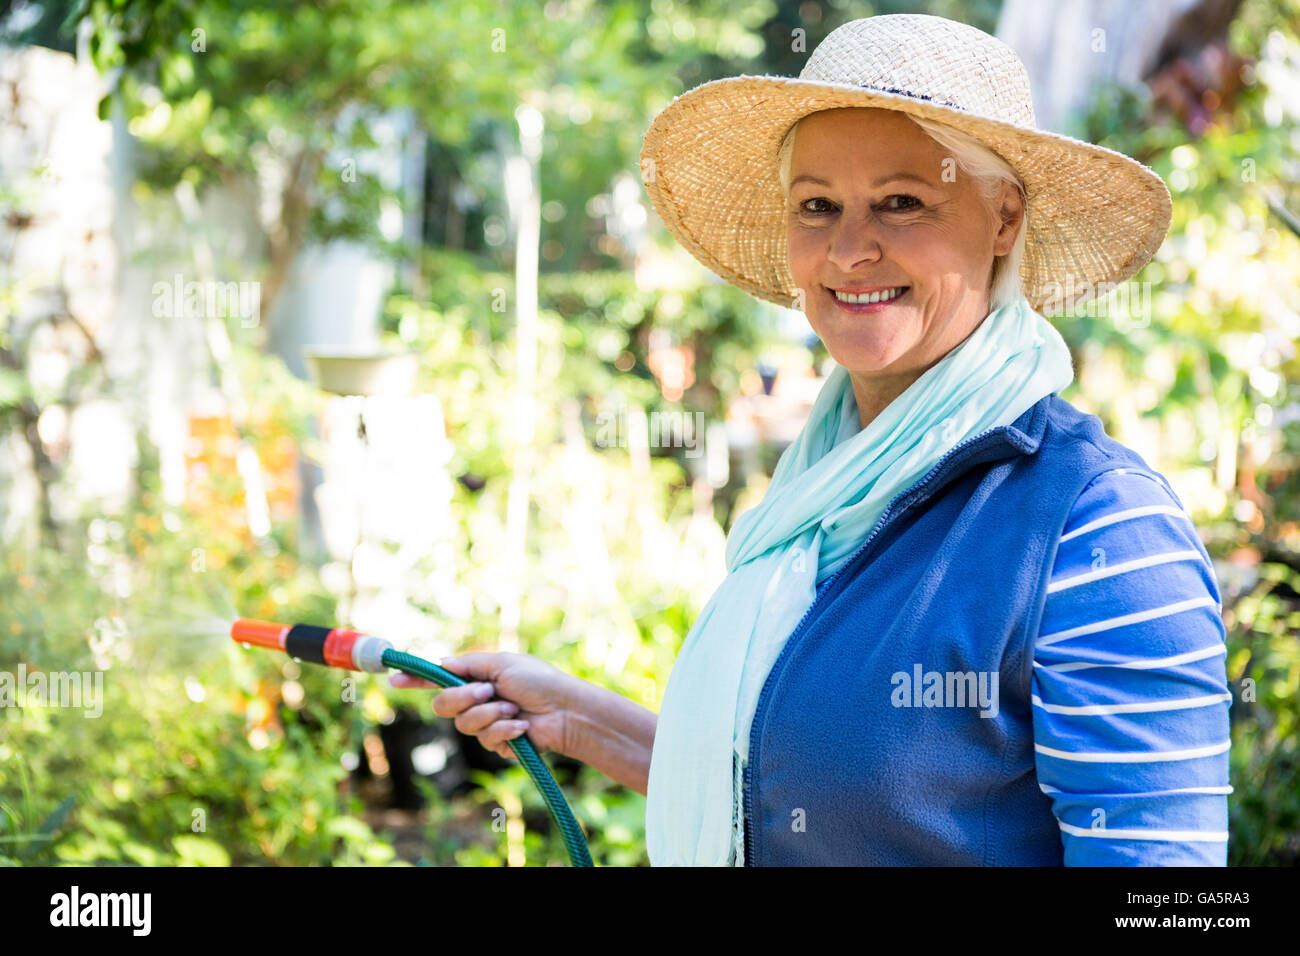 Portrait of happy gardener watering from hose at garden - Stock Image